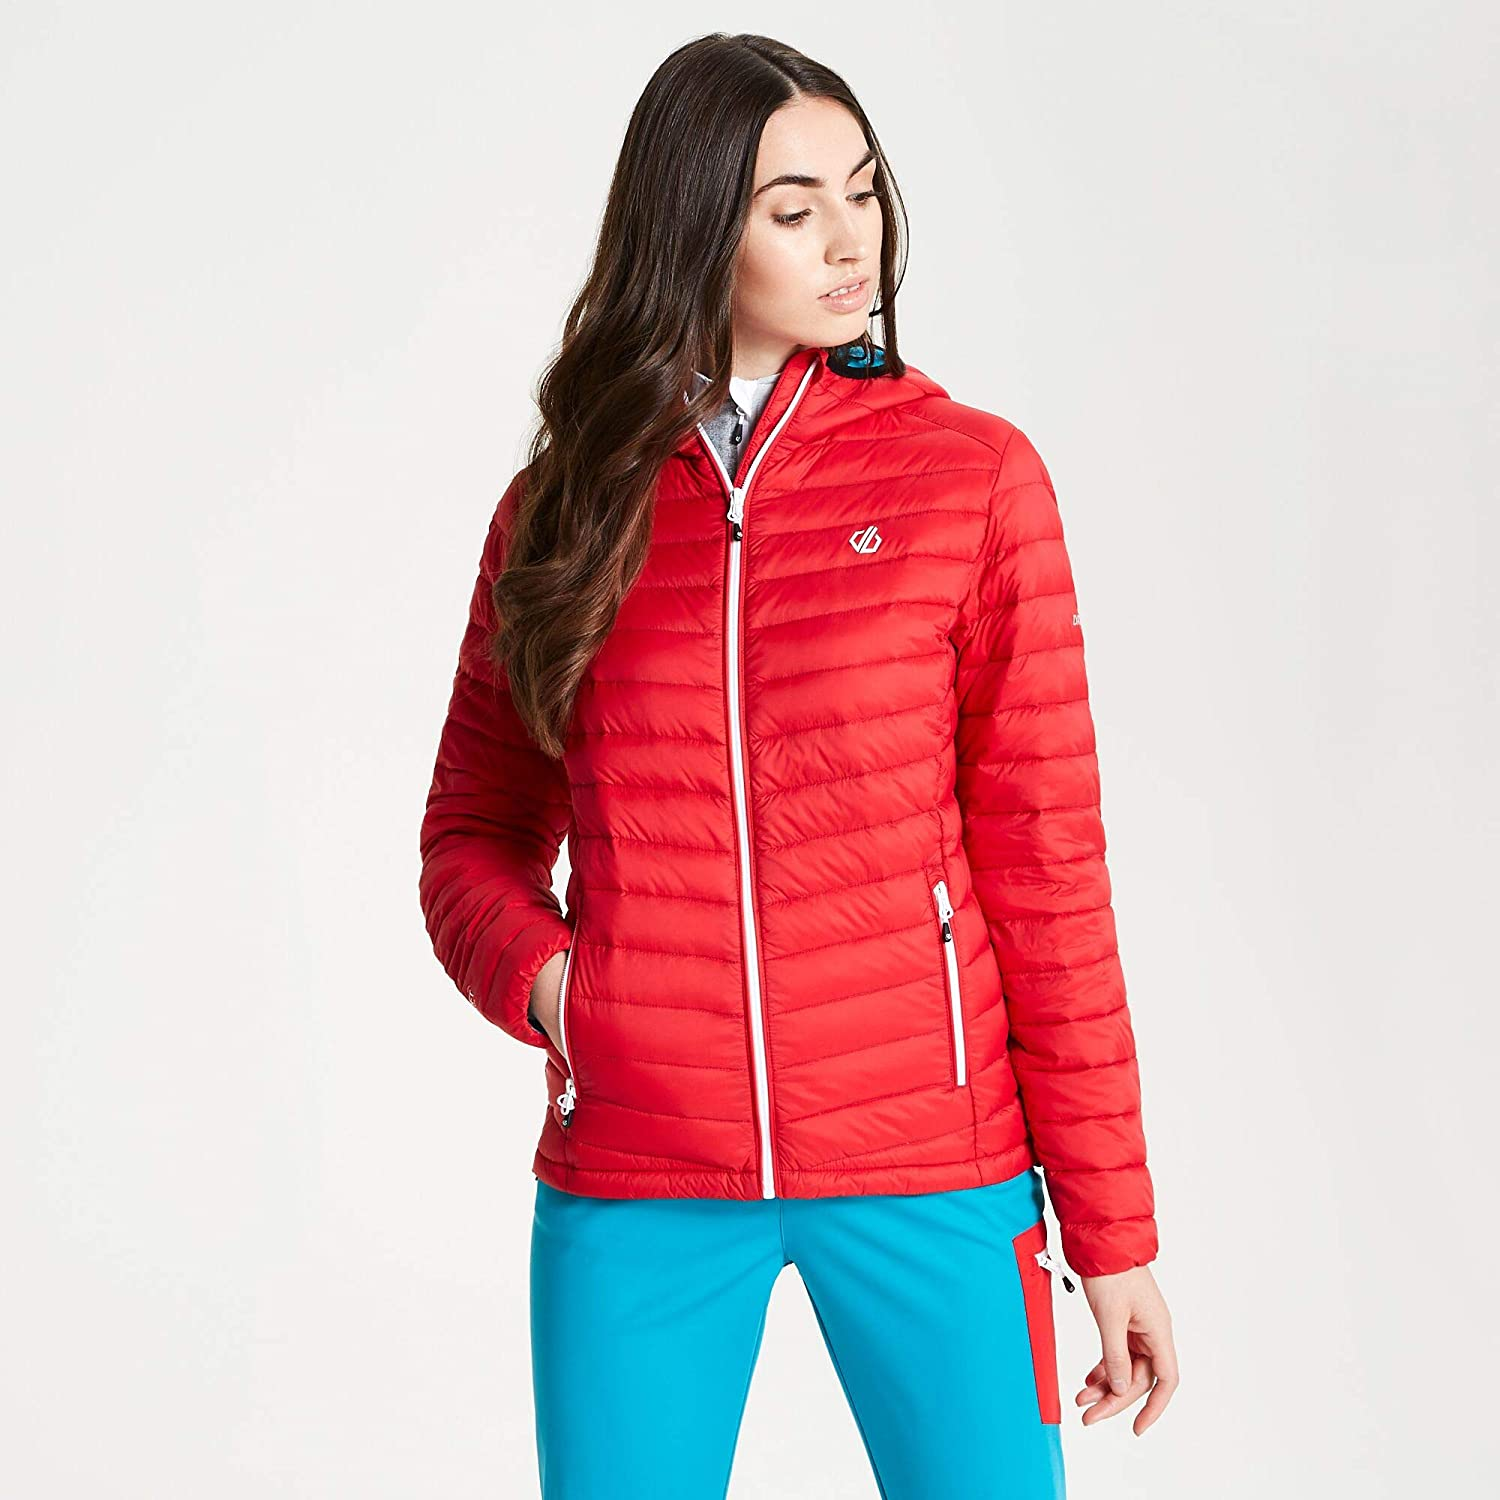 Dare 2b Womens Elative Premium Duck Down Fill Water Repellent Packaway Hooded Active Winter Jacket With Zipped Lower Pockets and Adjustable Fit